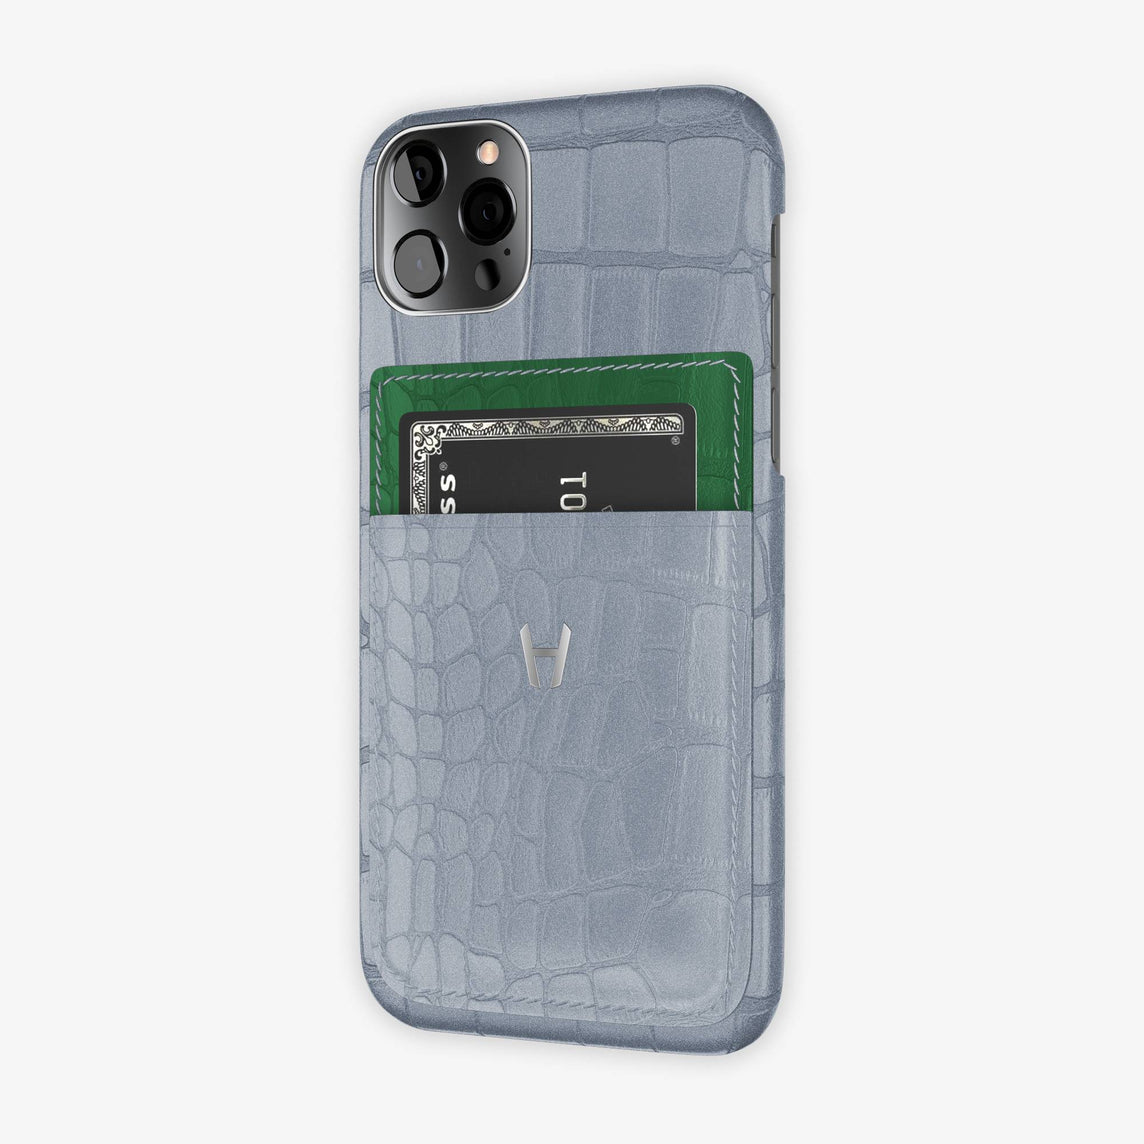 iPhone 12 & 12 Pro | Silver/Green Emerald - Stainless Steel